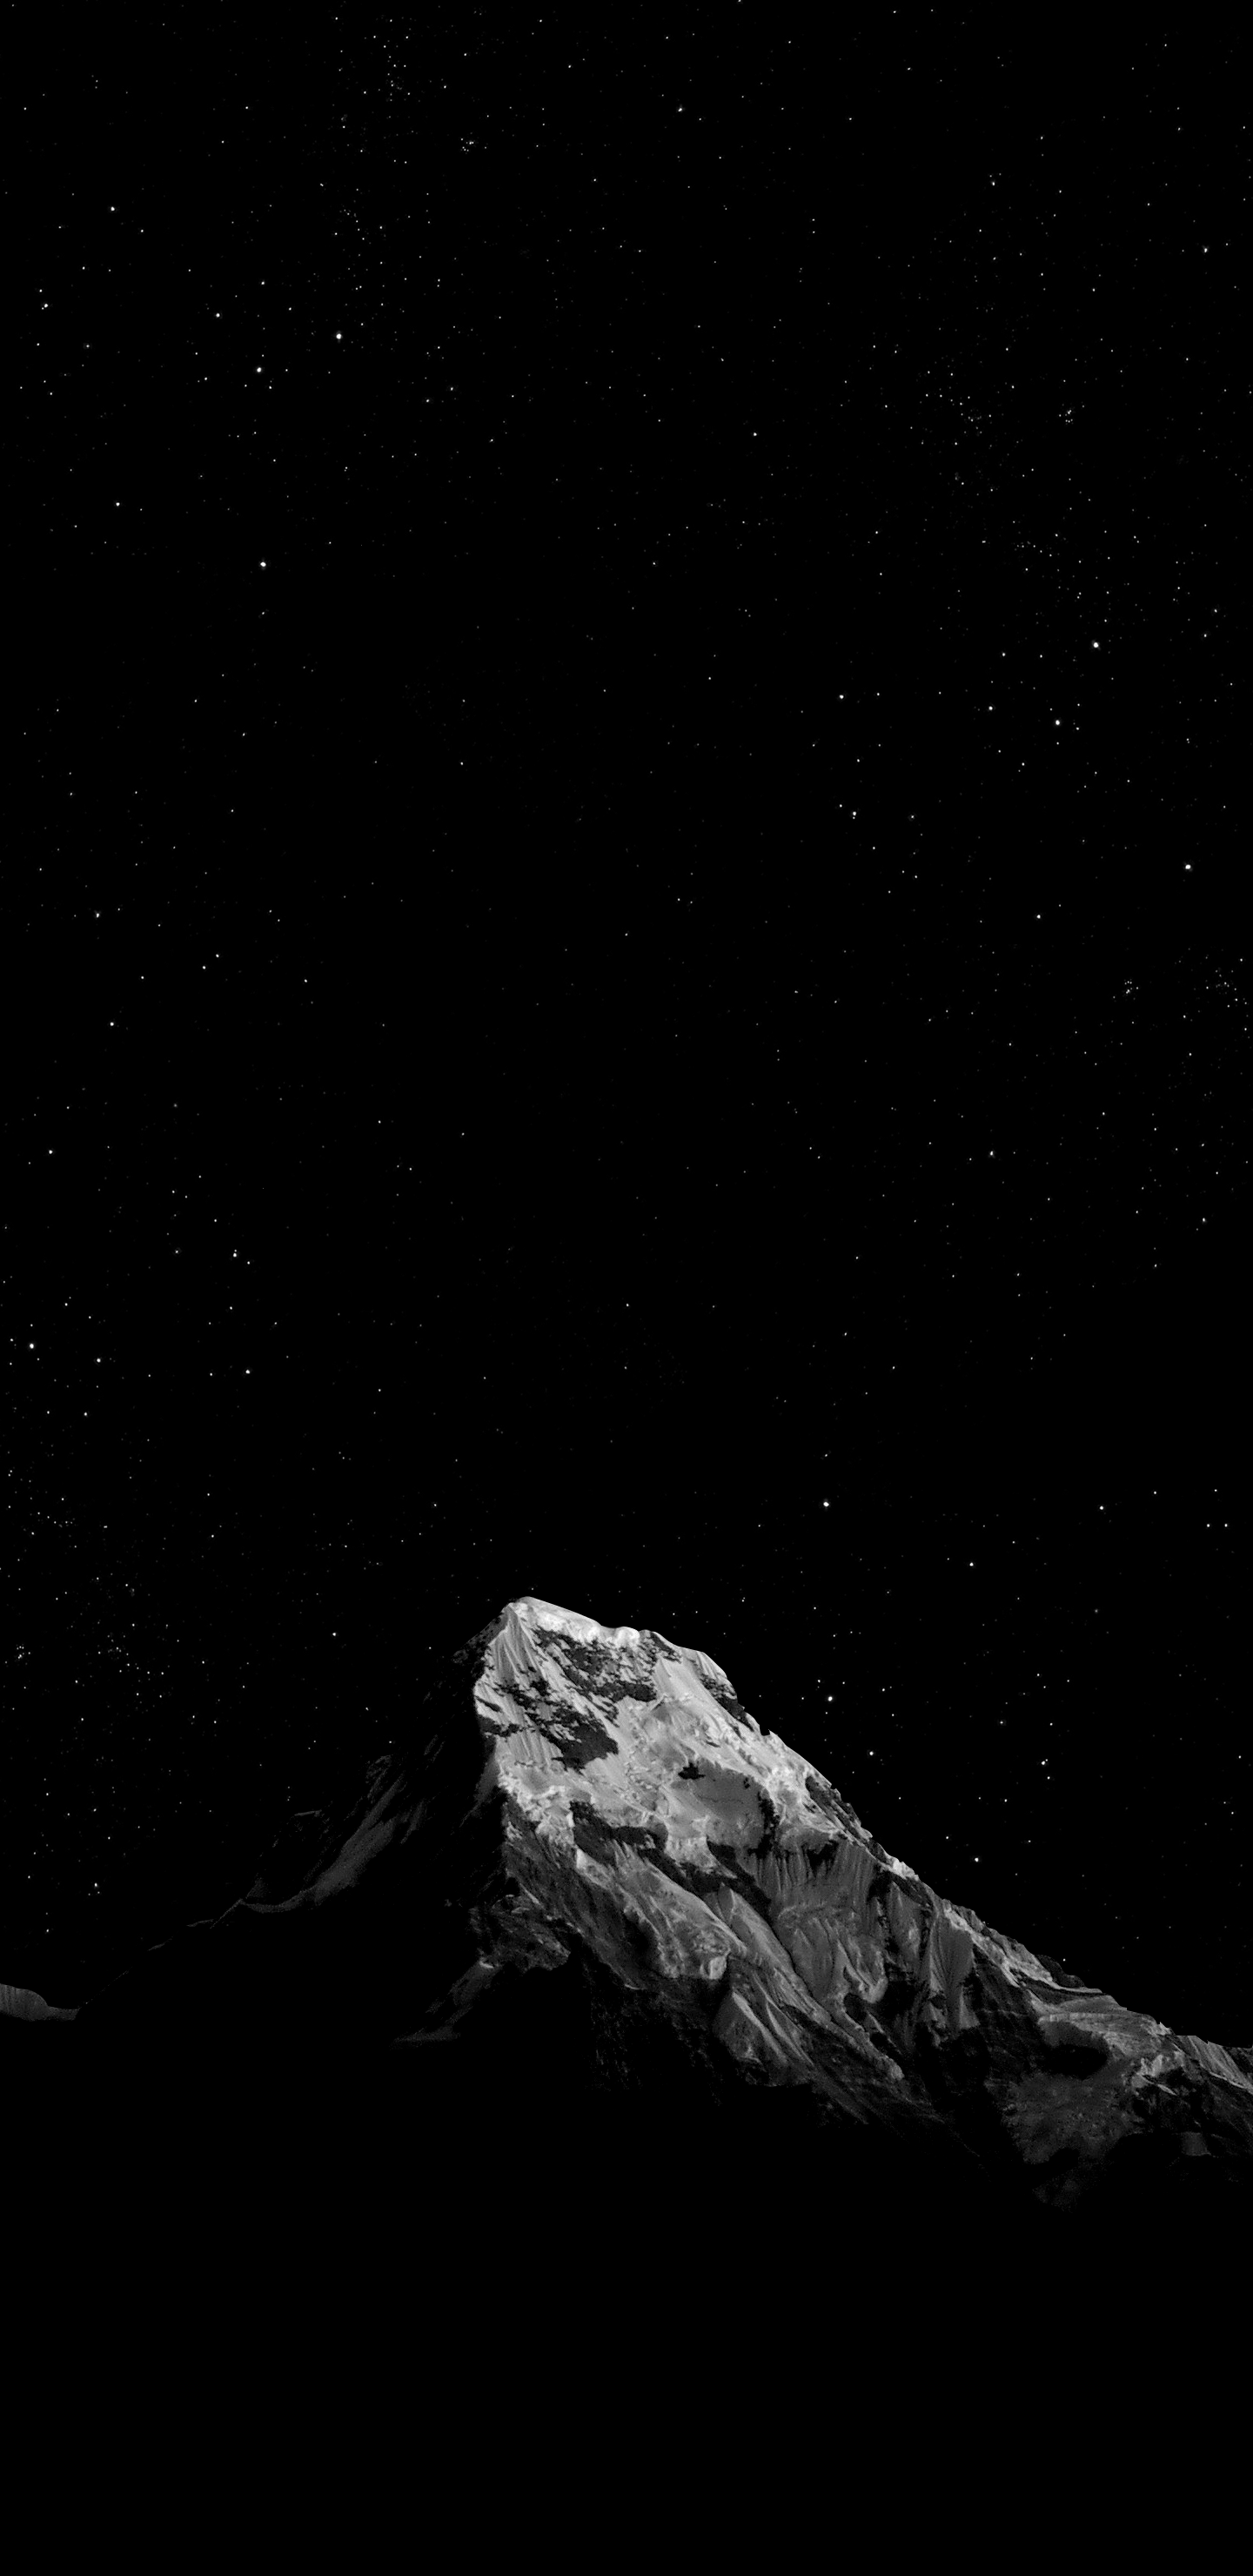 Amoled 1440x2960 Wallpapers - Wallpaper